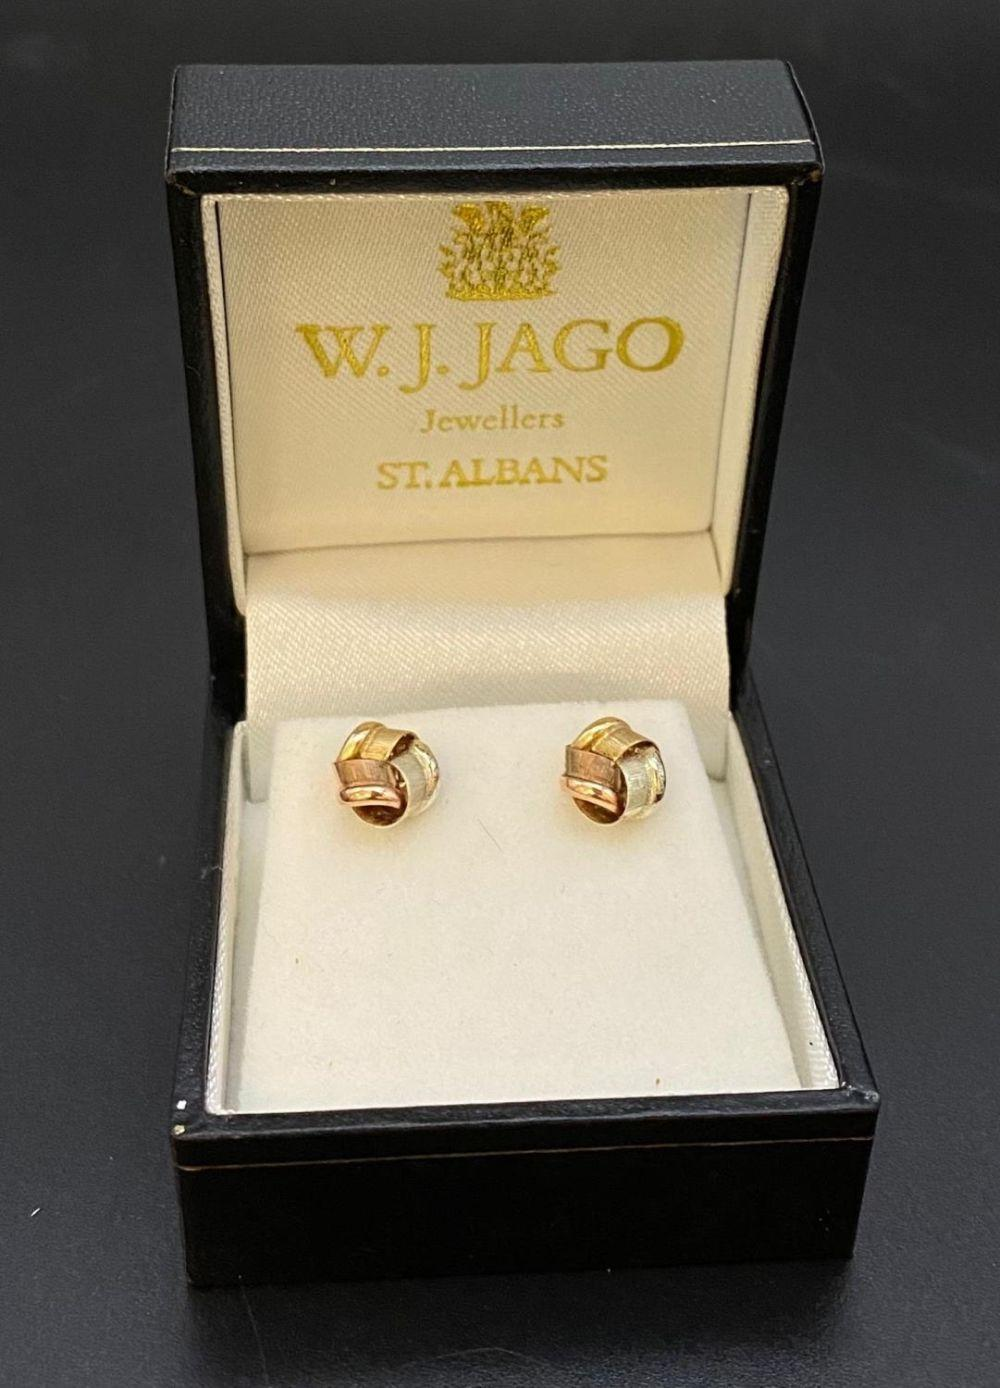 A PAIR OF 3 COLOUR GOLD EARRINGS IN BOX.